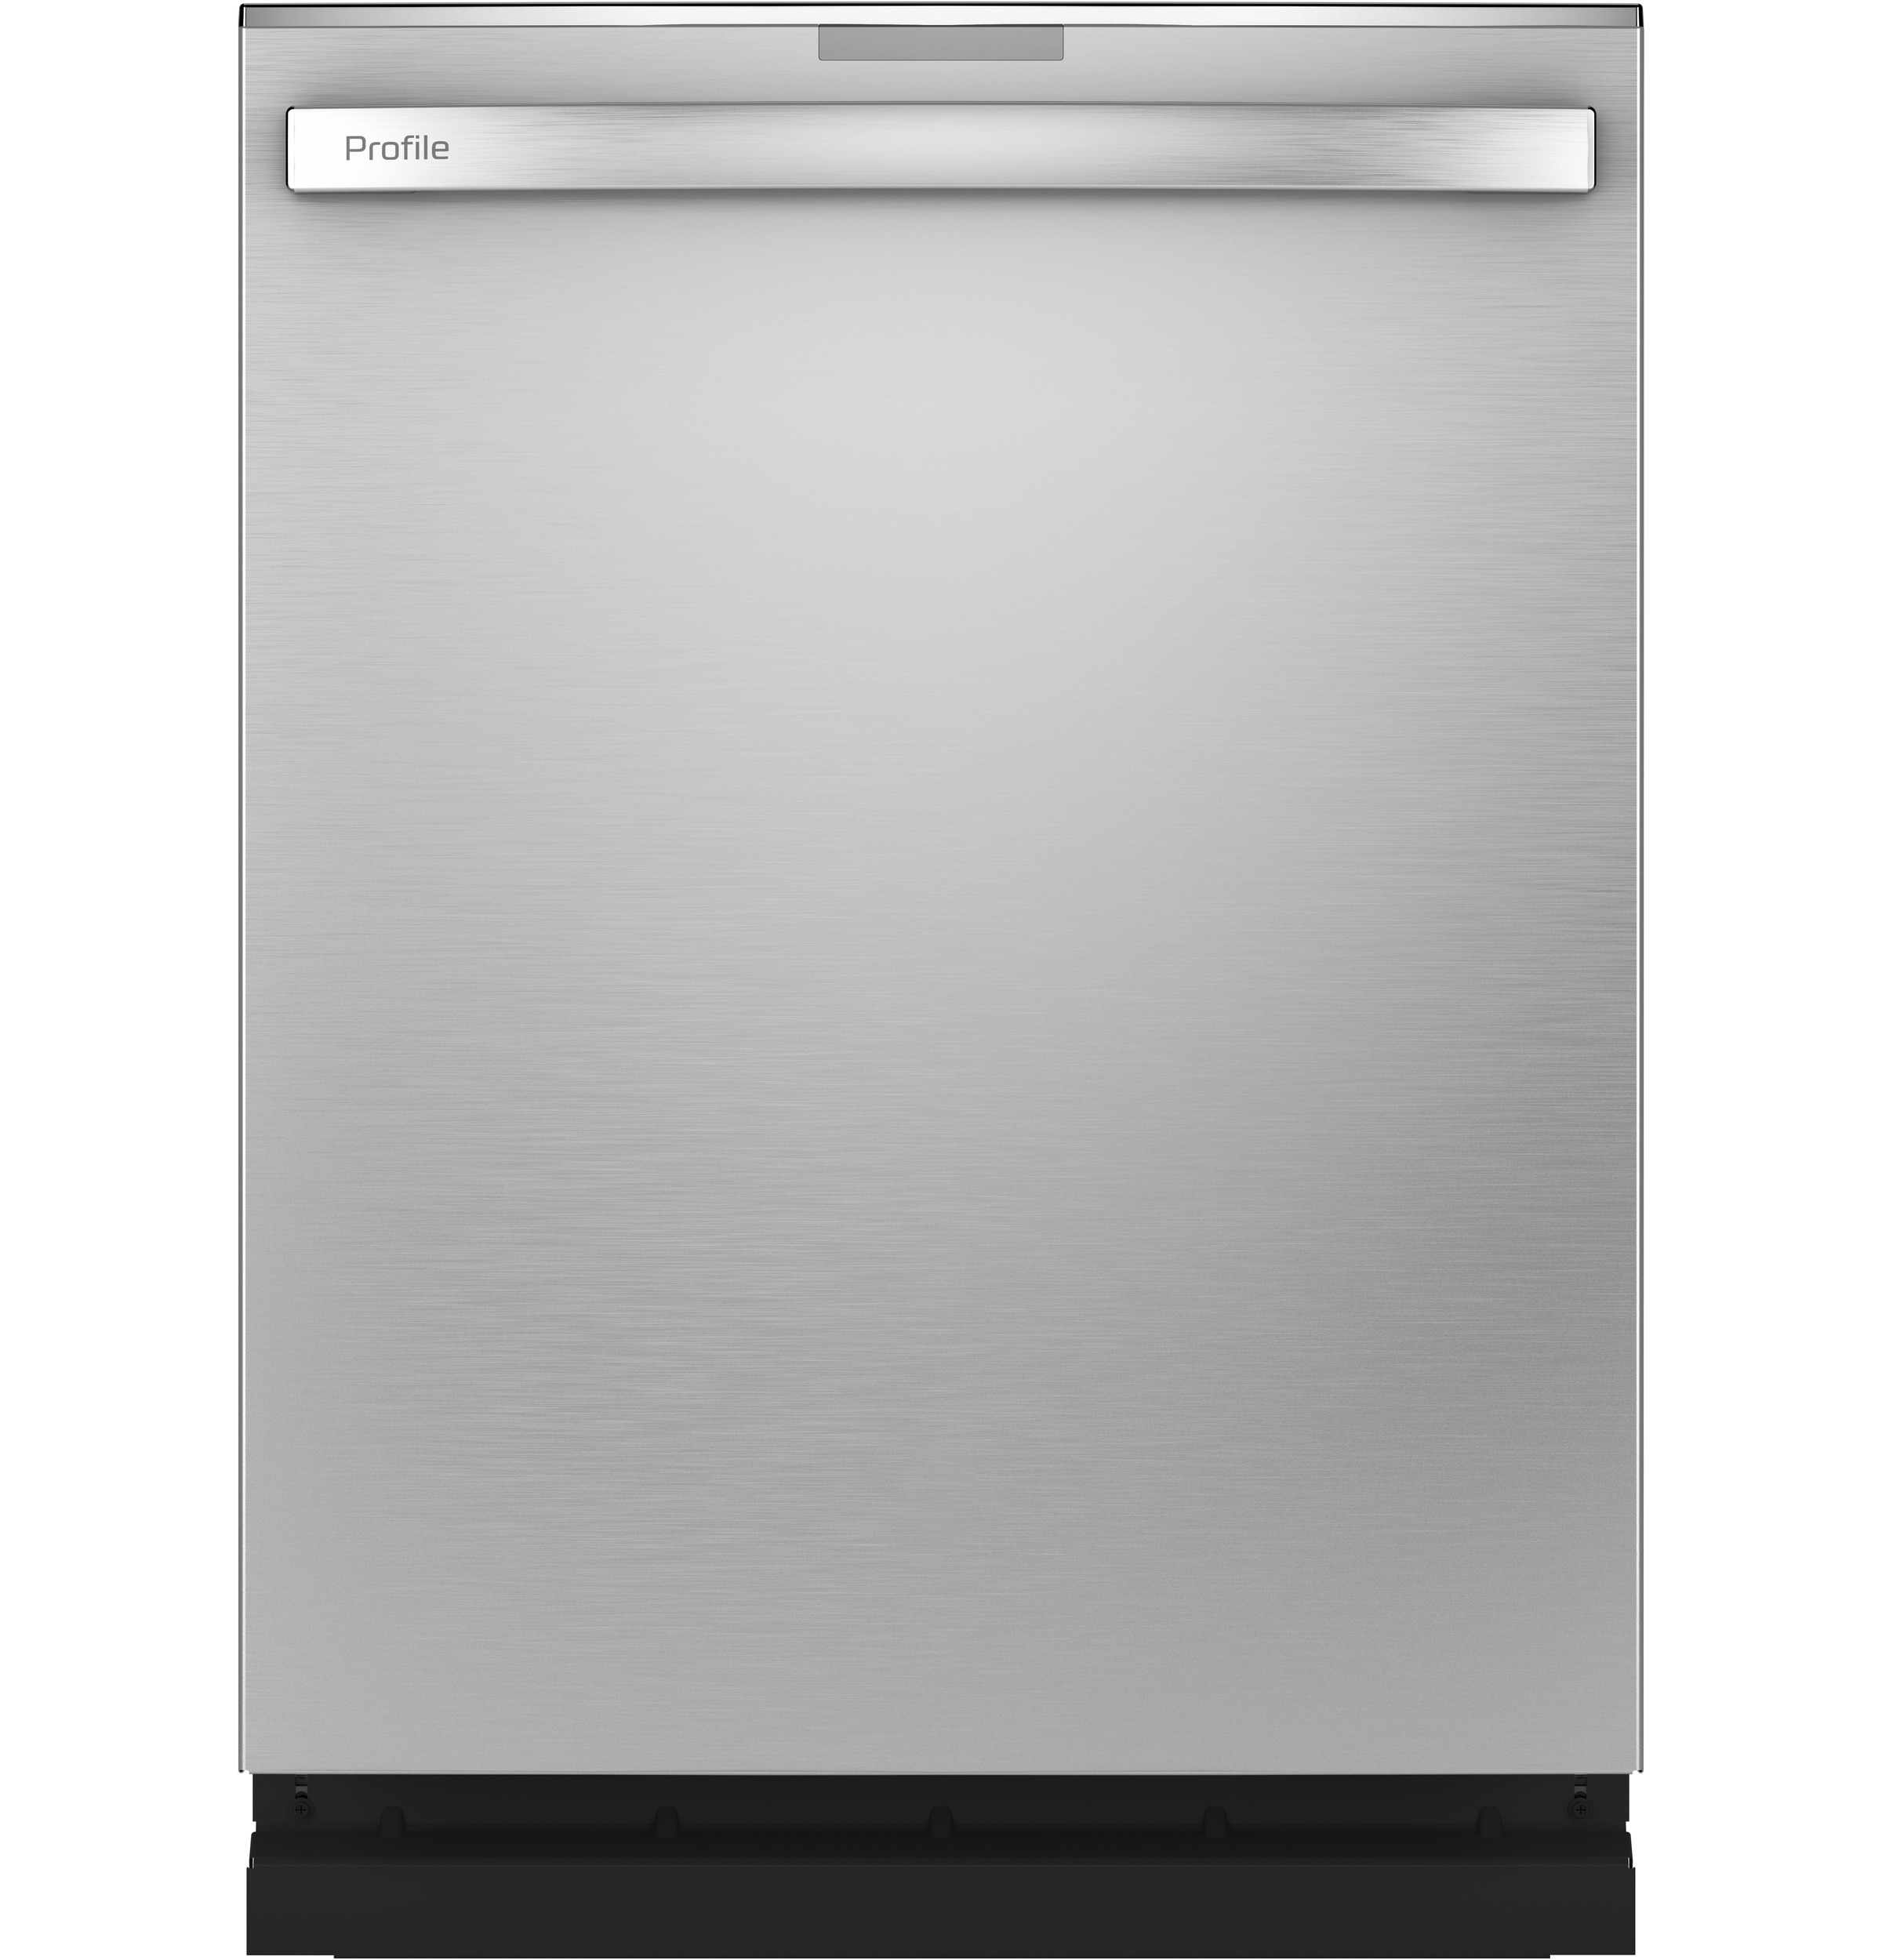 GE Profile GE Profile™ UltraFresh System Dishwasher with Stainless Steel Interior